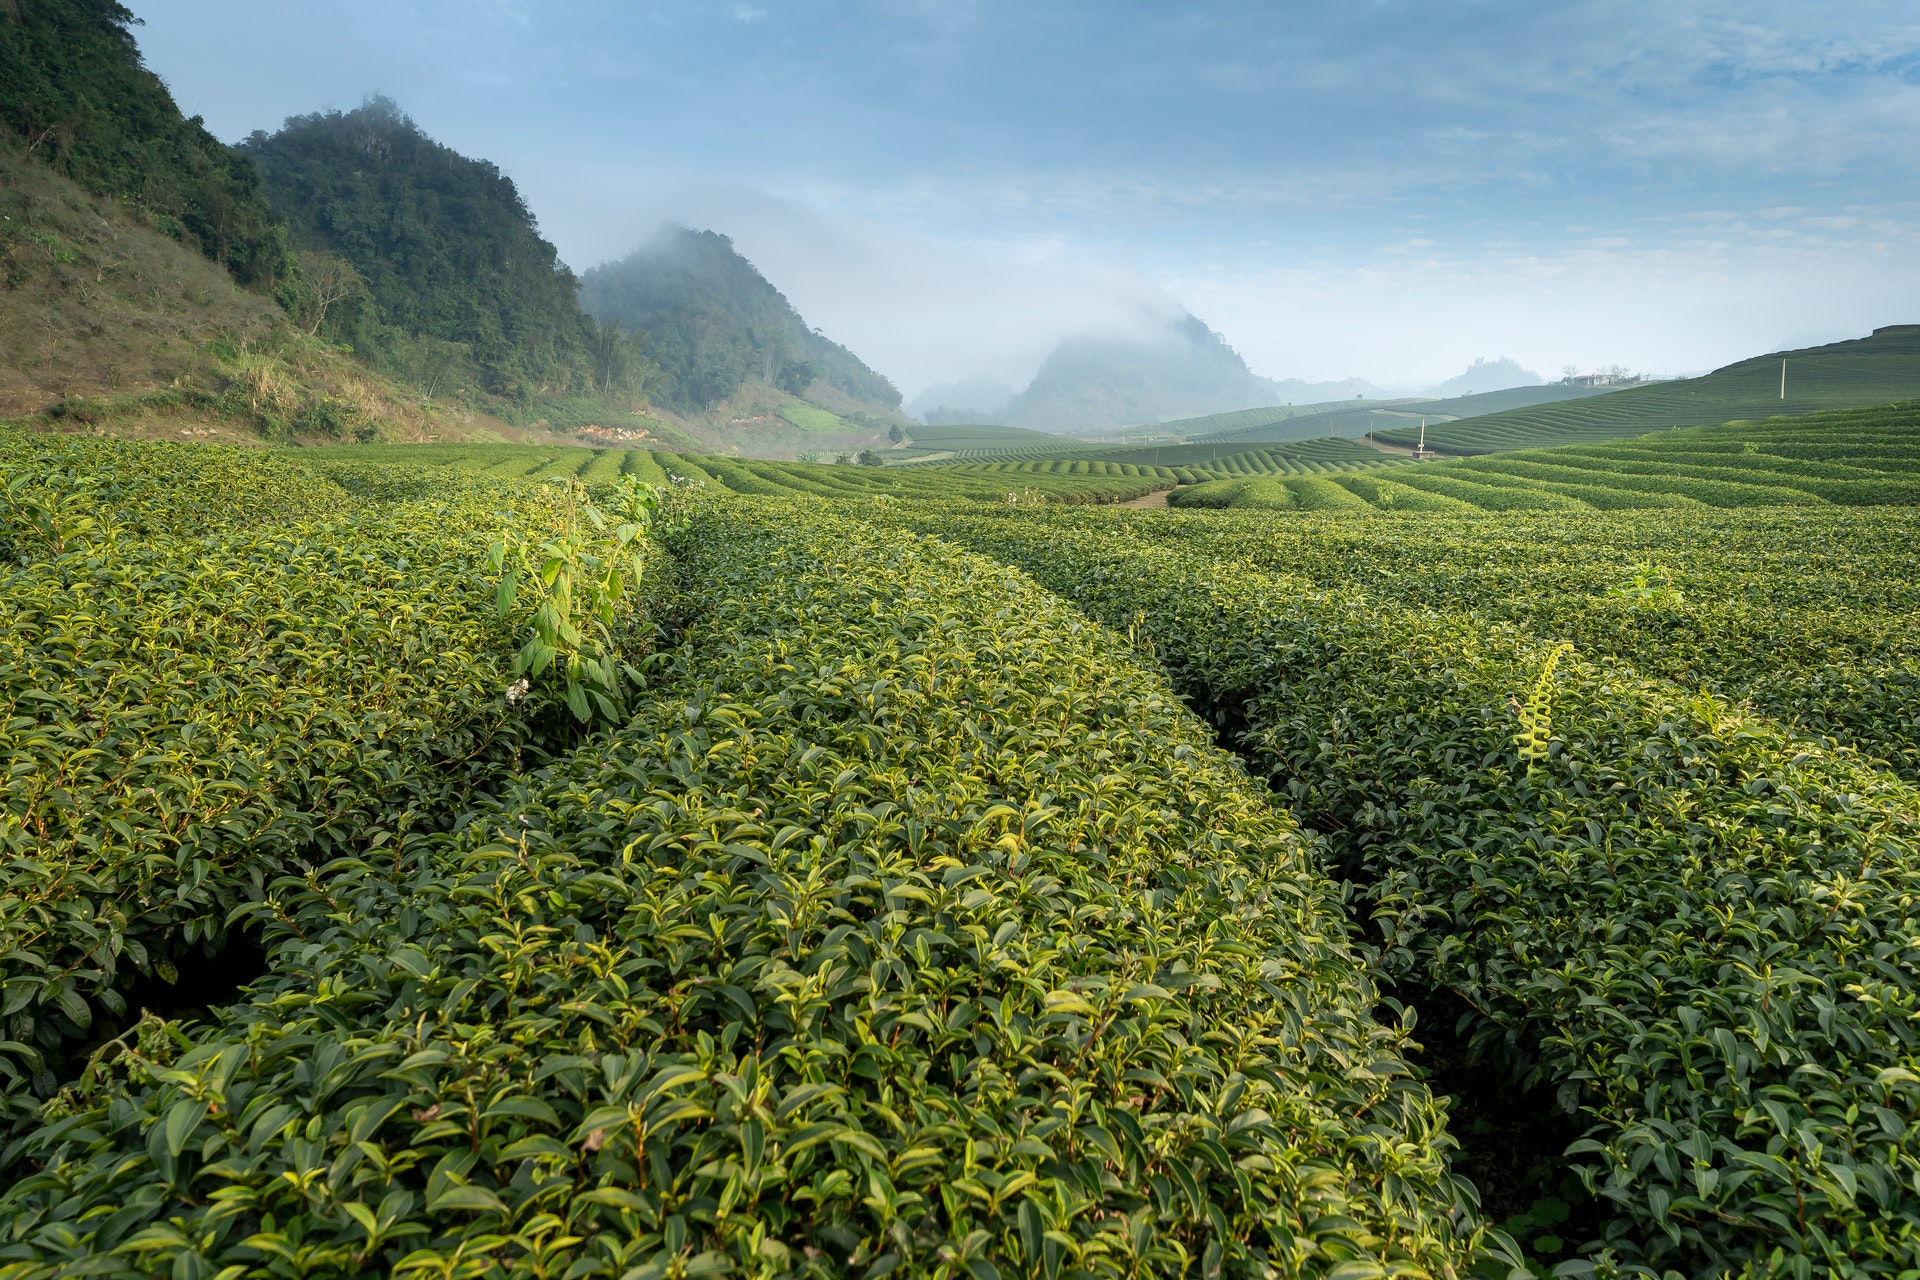 Field of tea